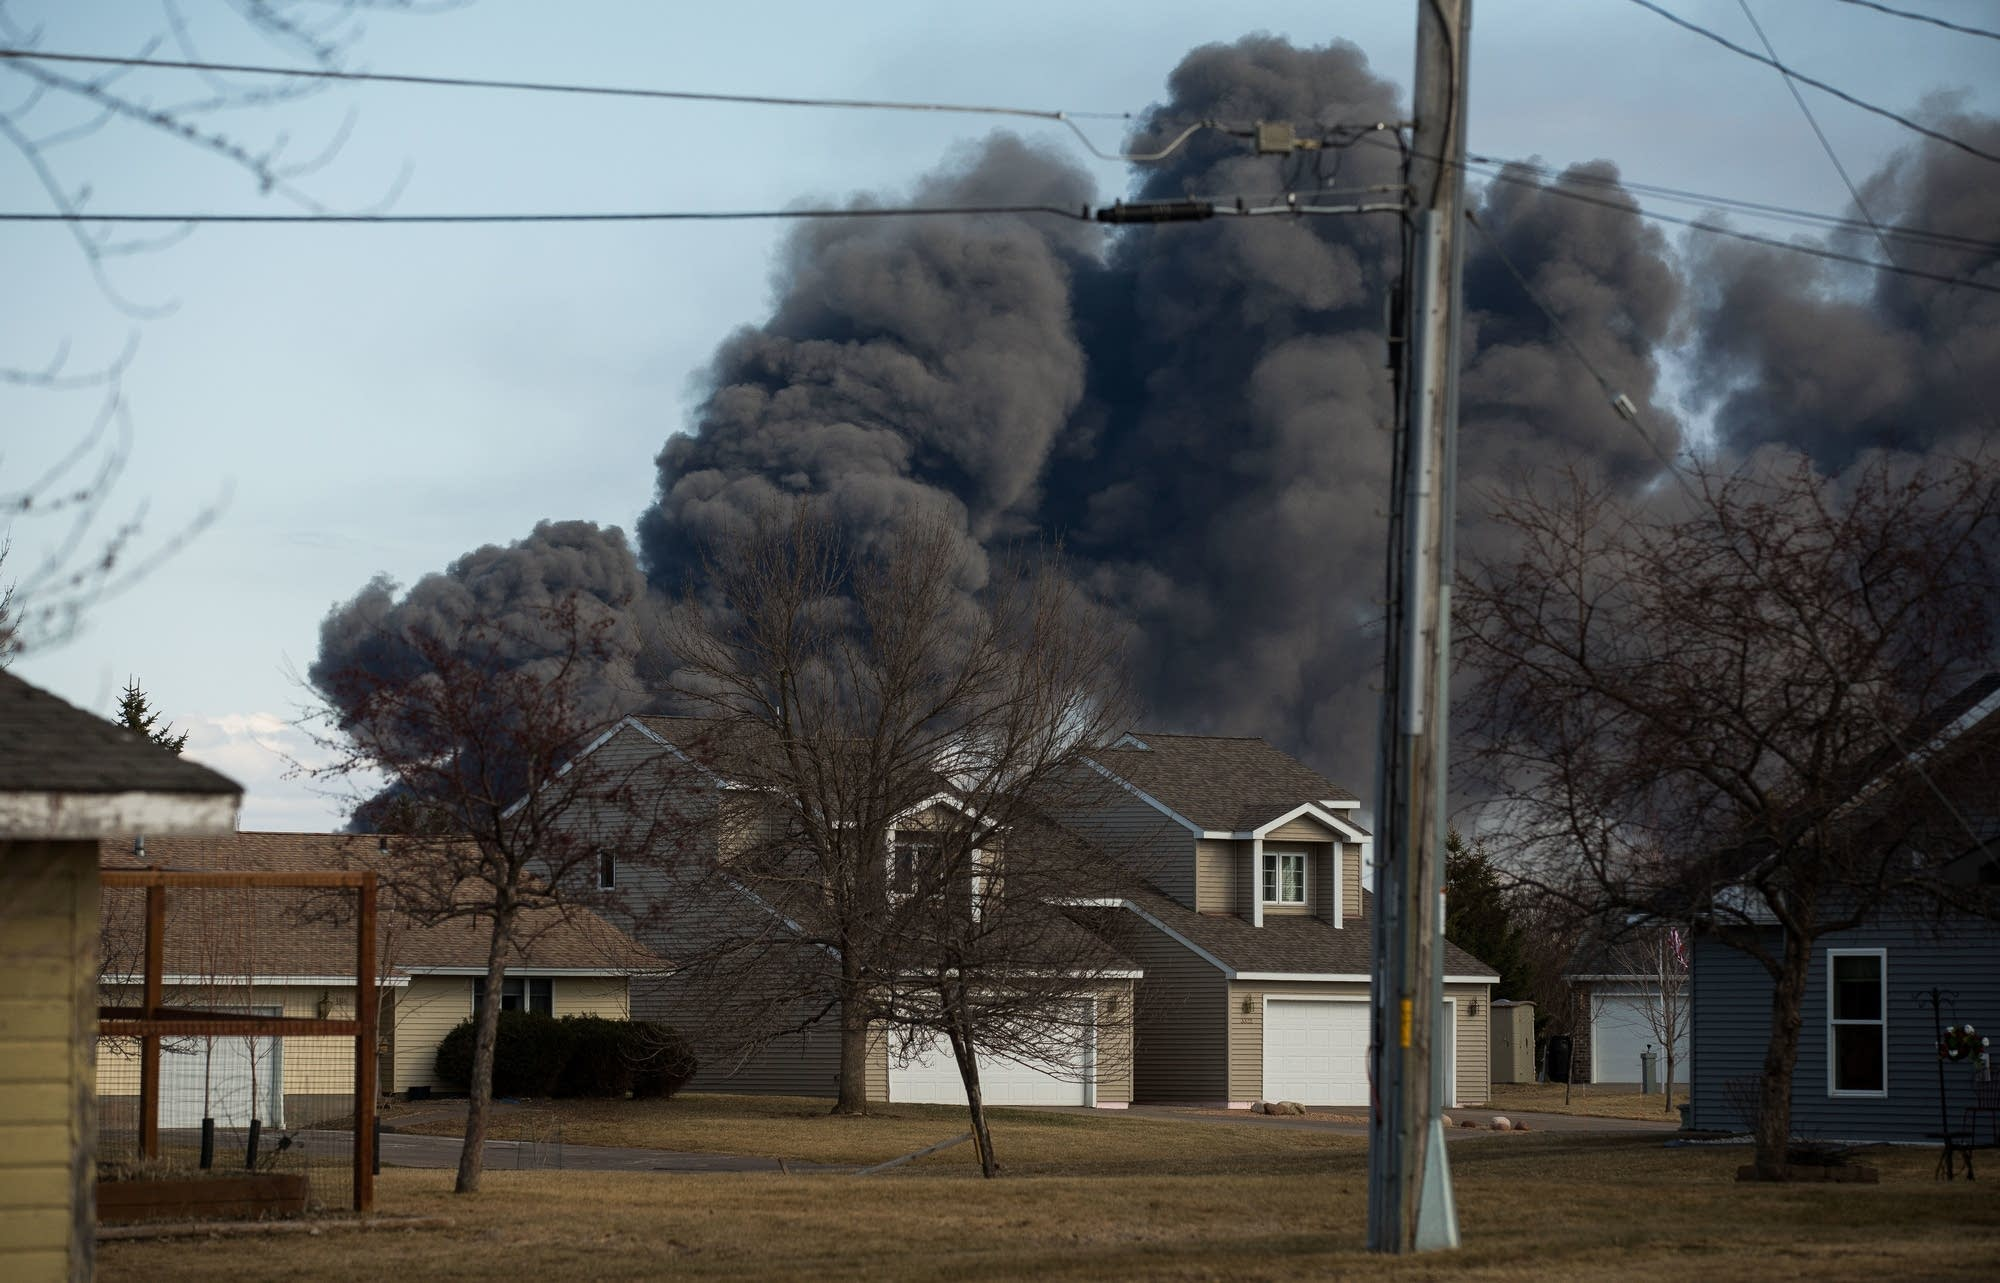 Black smoke from the refinery fire seen in a neighborhood a mile away.